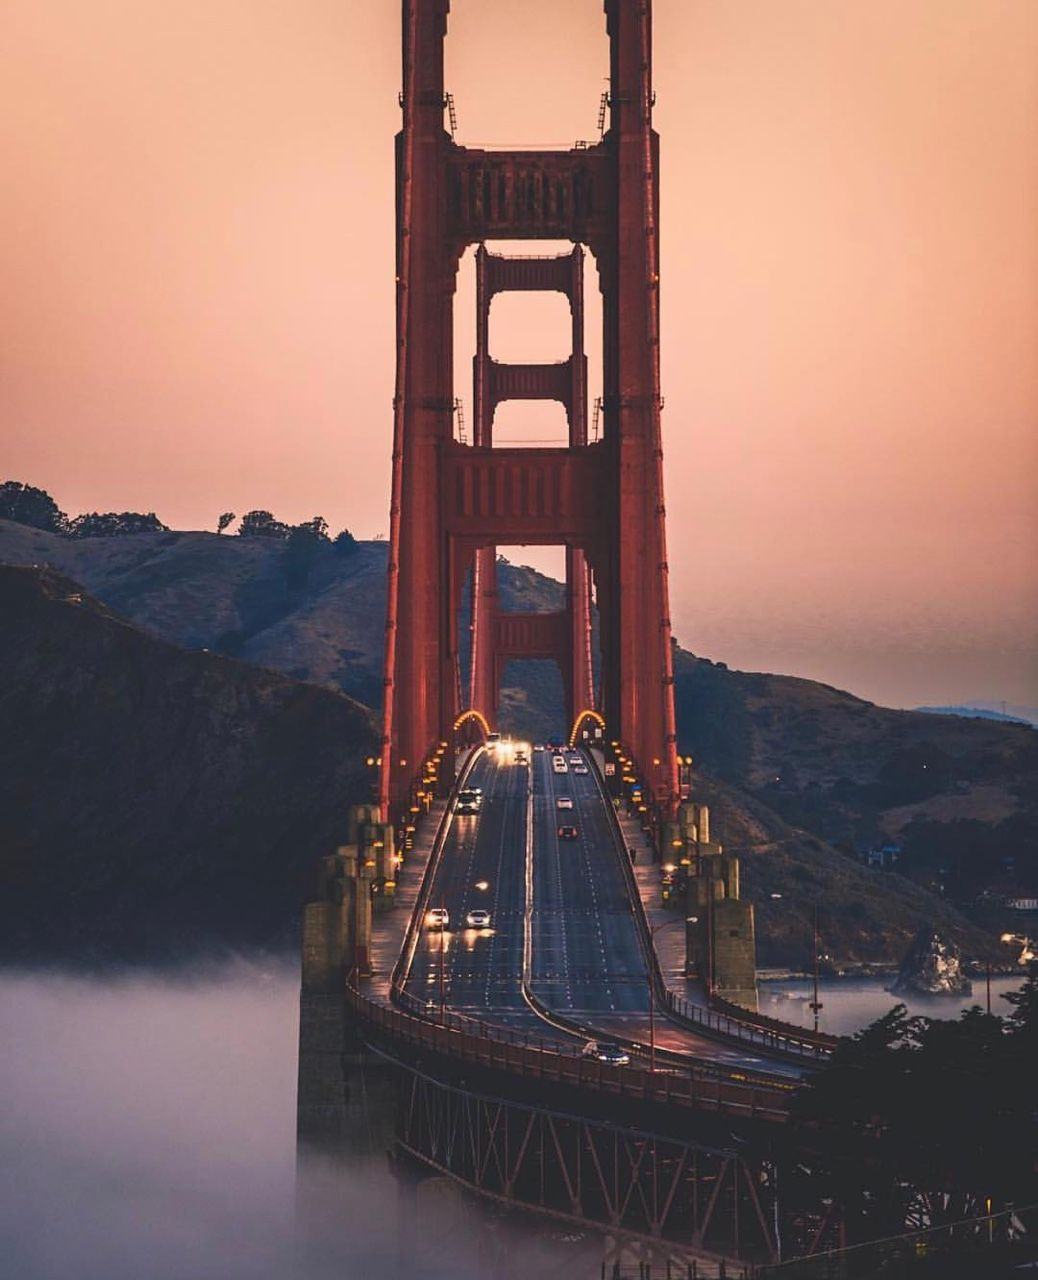 Early morning commute at Golden Gate Bridge by @daveolinger #sanfrancisco #sf